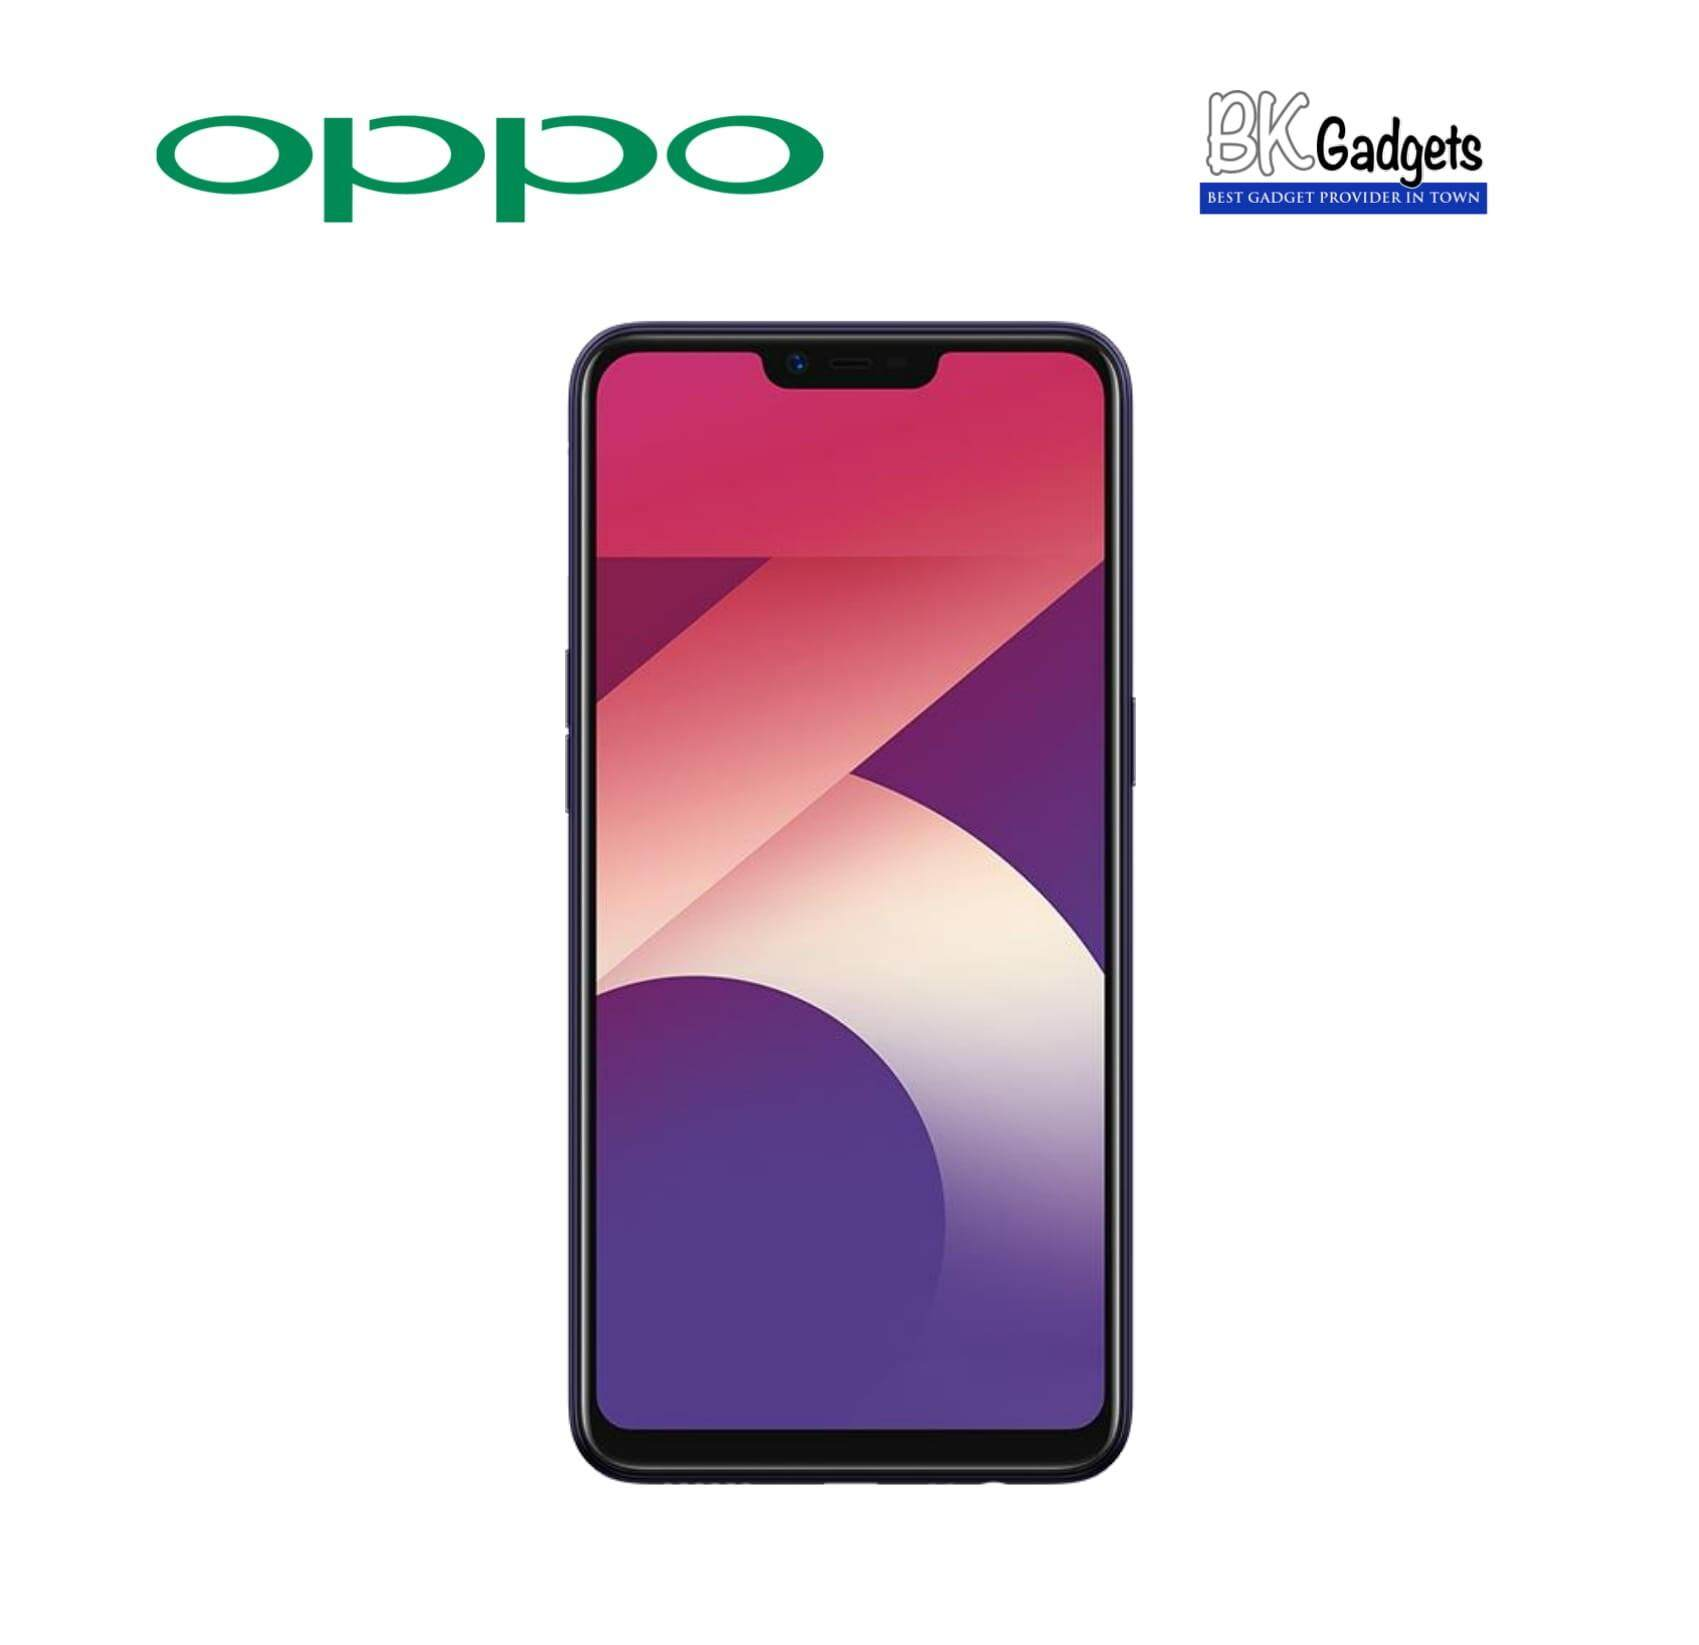 OPPO A3S 3/32GB Purple- Original from OPPO Malaysia 1 Year Warranty